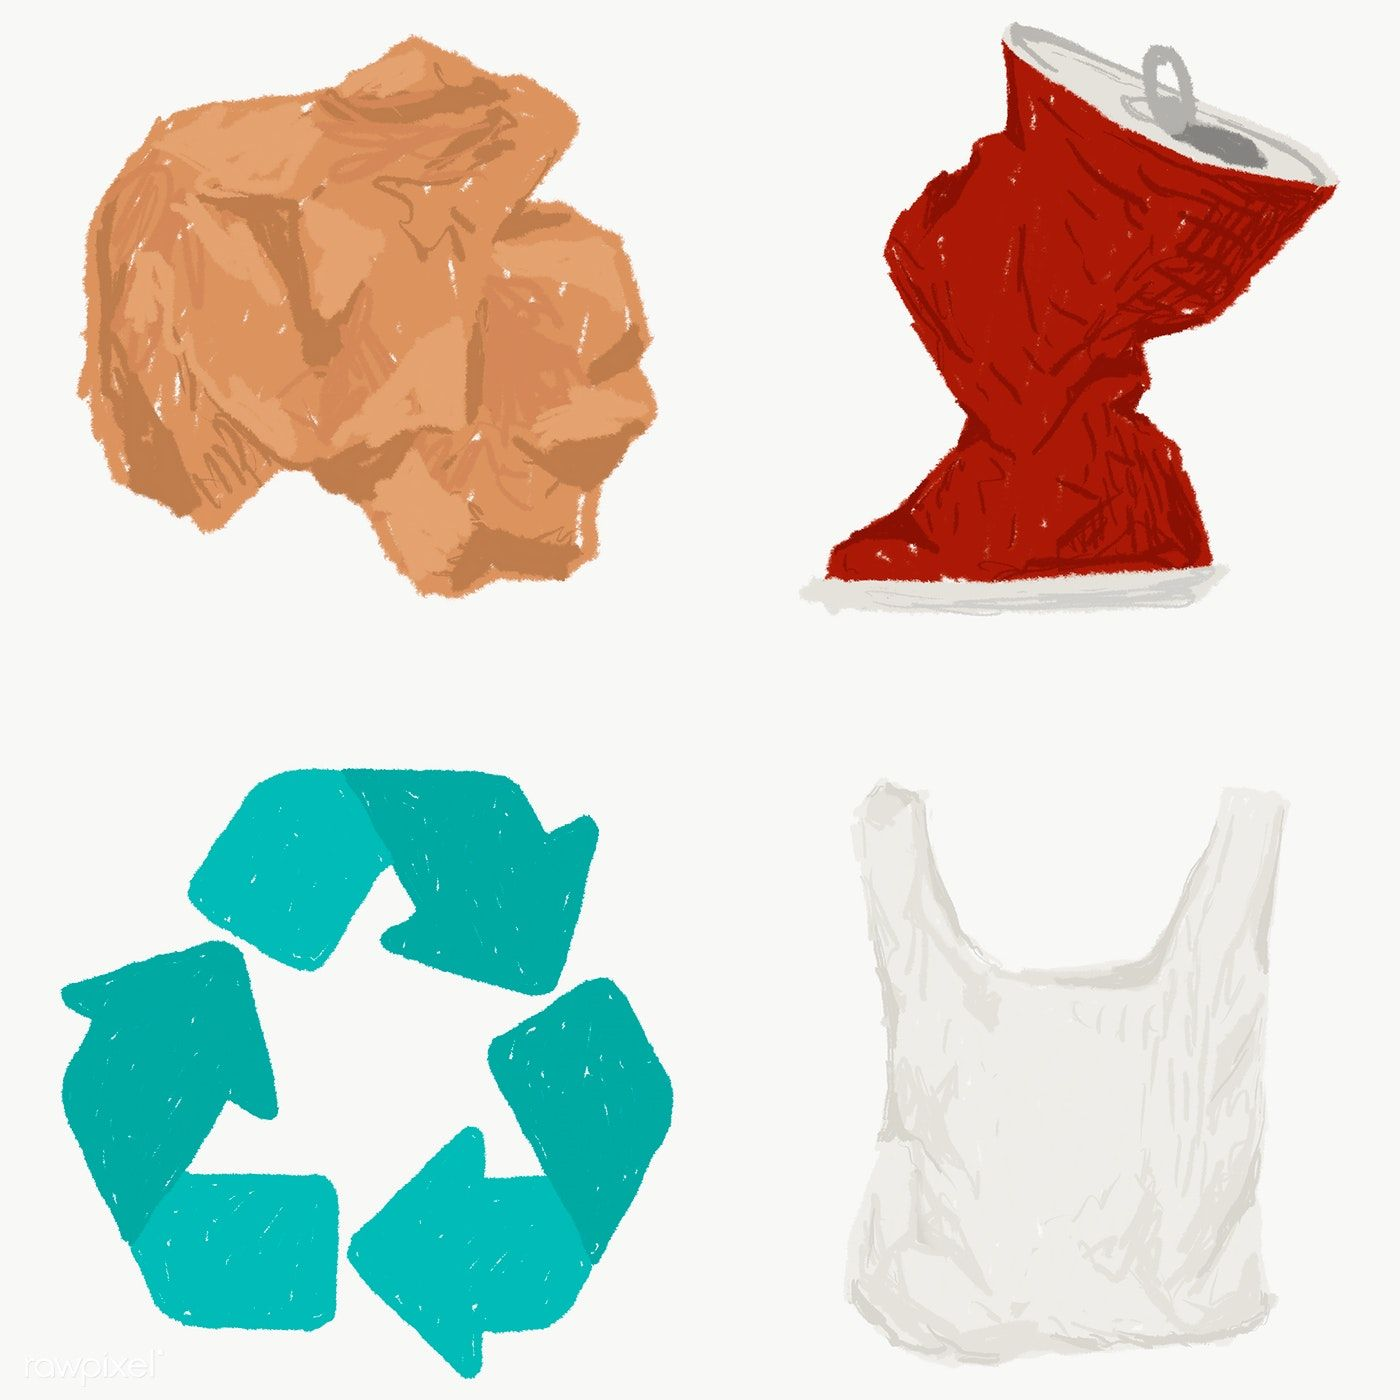 Recyclable Waste Icon Set Transparent Png Free Image By Rawpixel Com Sasi Icon Set Free Illustrations Iconic Photos